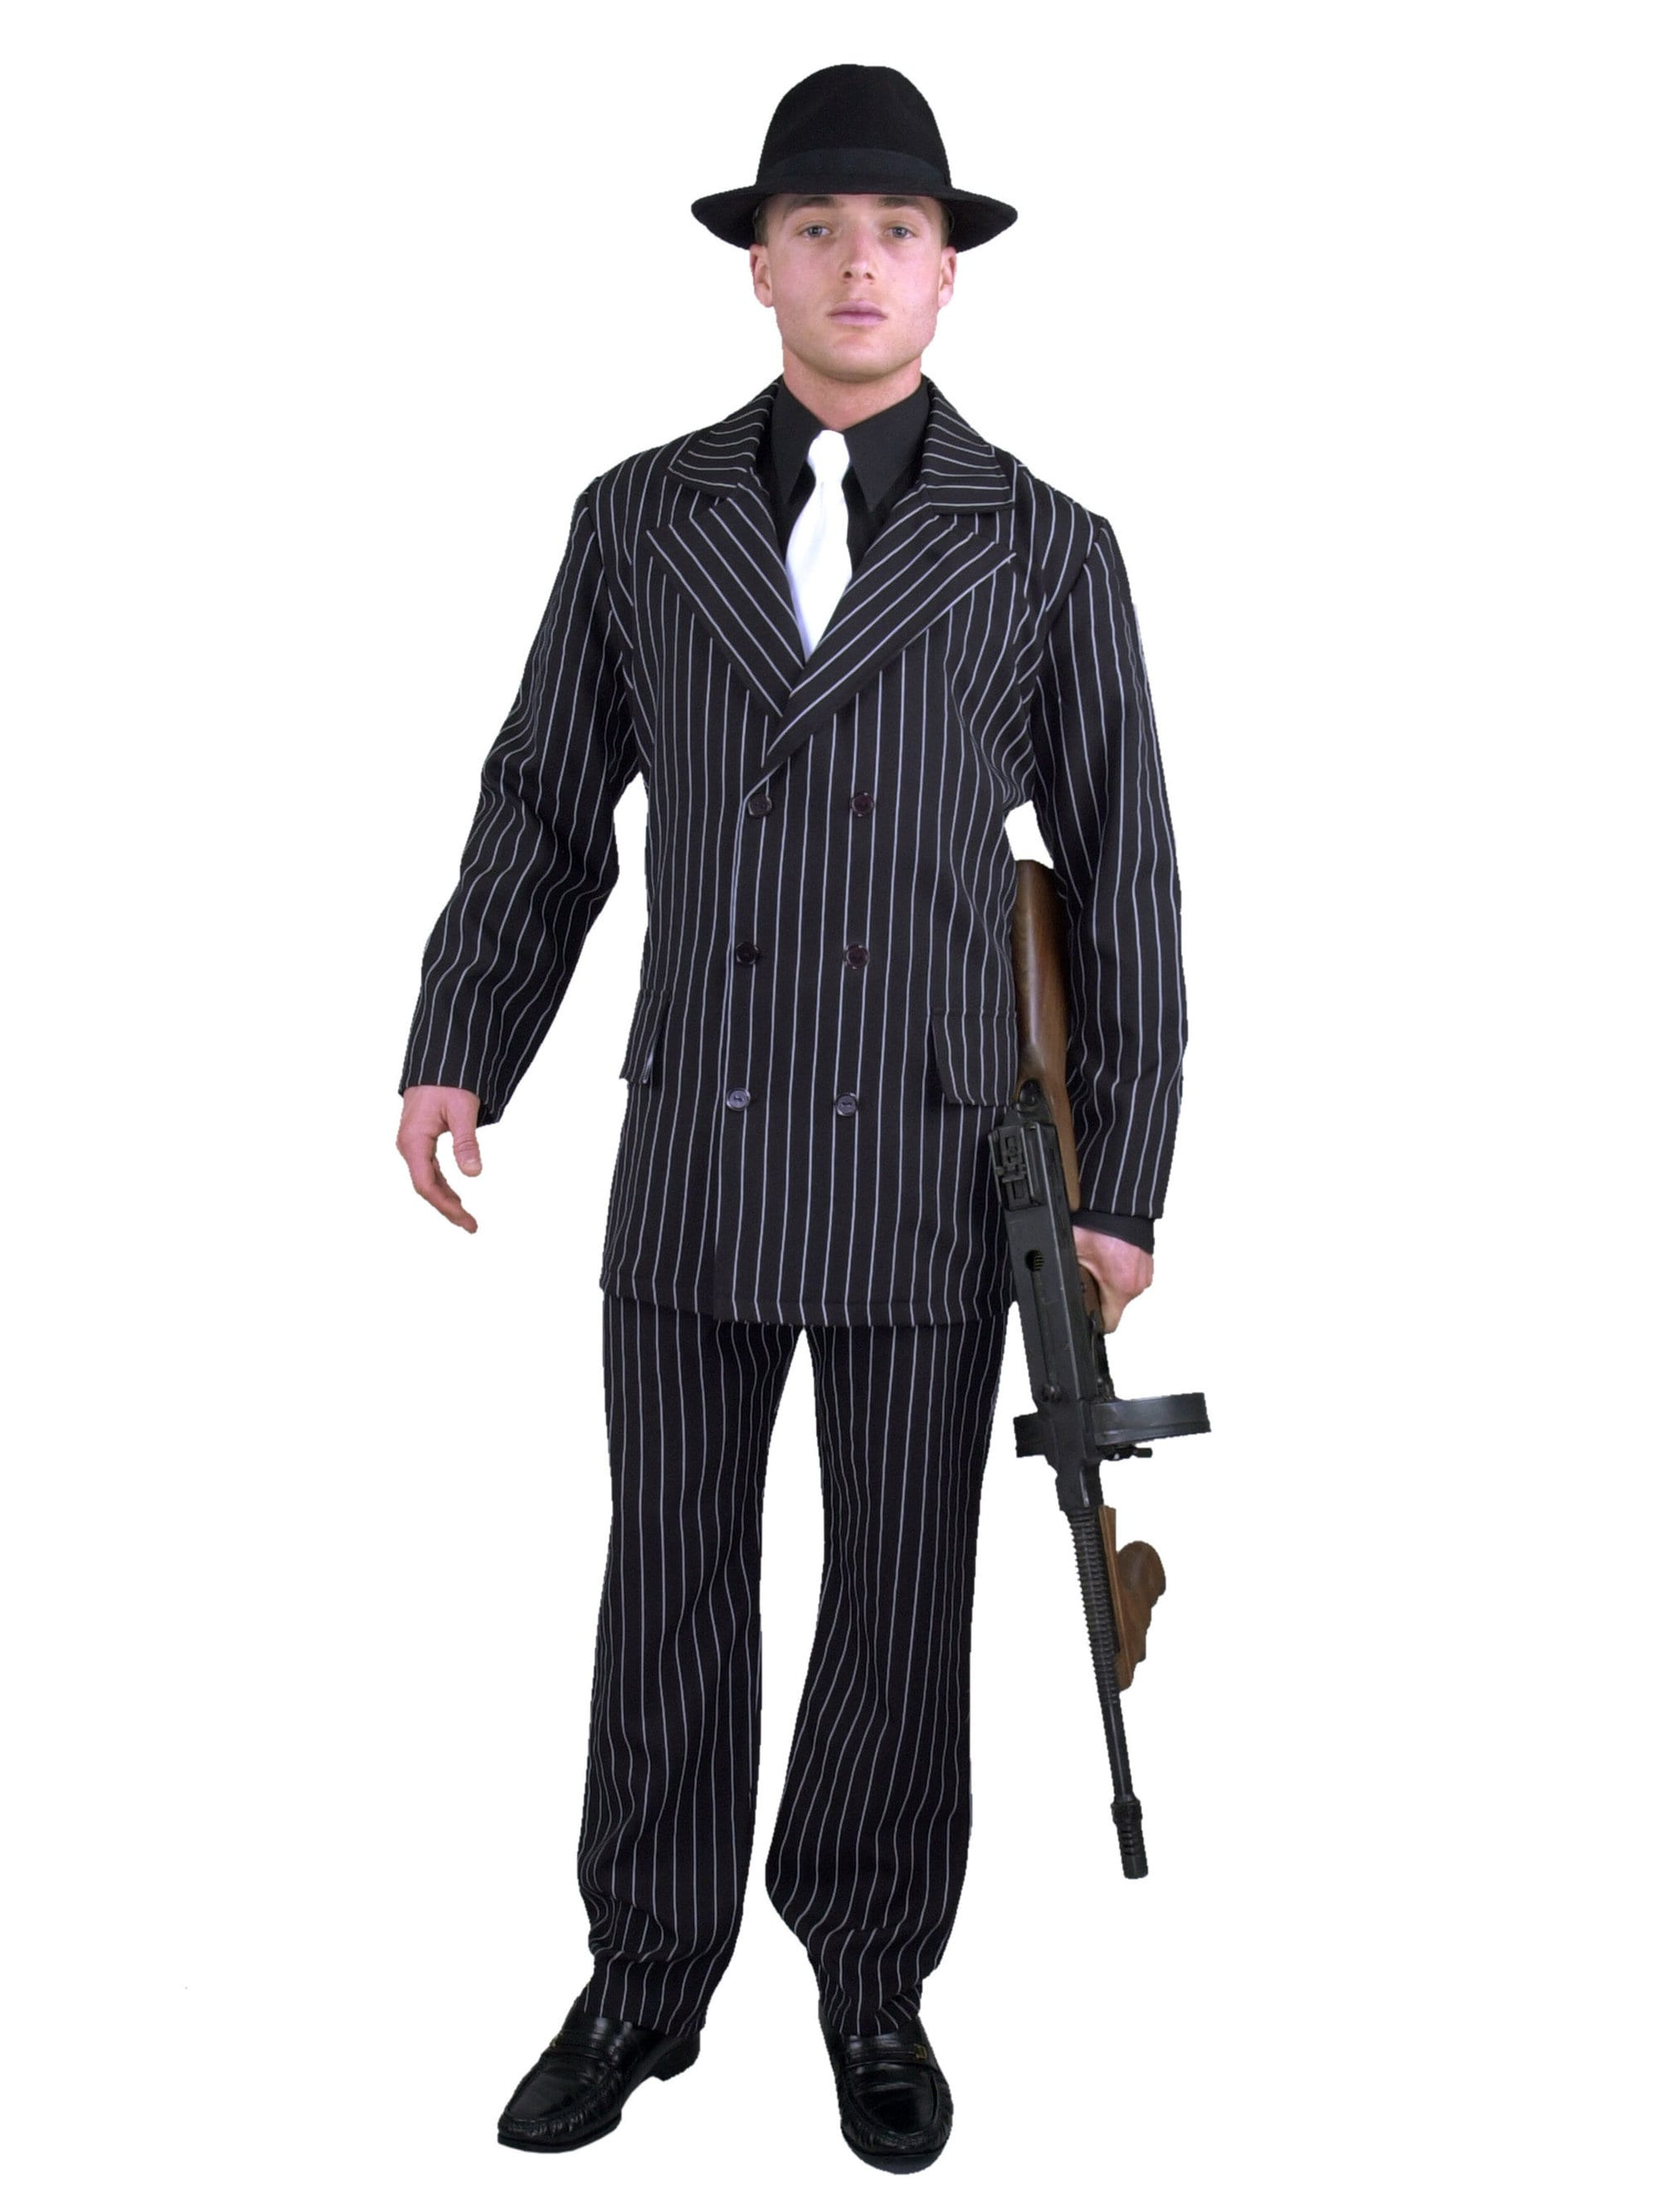 Gangster Suit Adult Costume  sc 1 st  Wholesale Halloween Costumes & Gangster Suit Adult Costume - Mens Costumes for 2018 | Wholesale ...